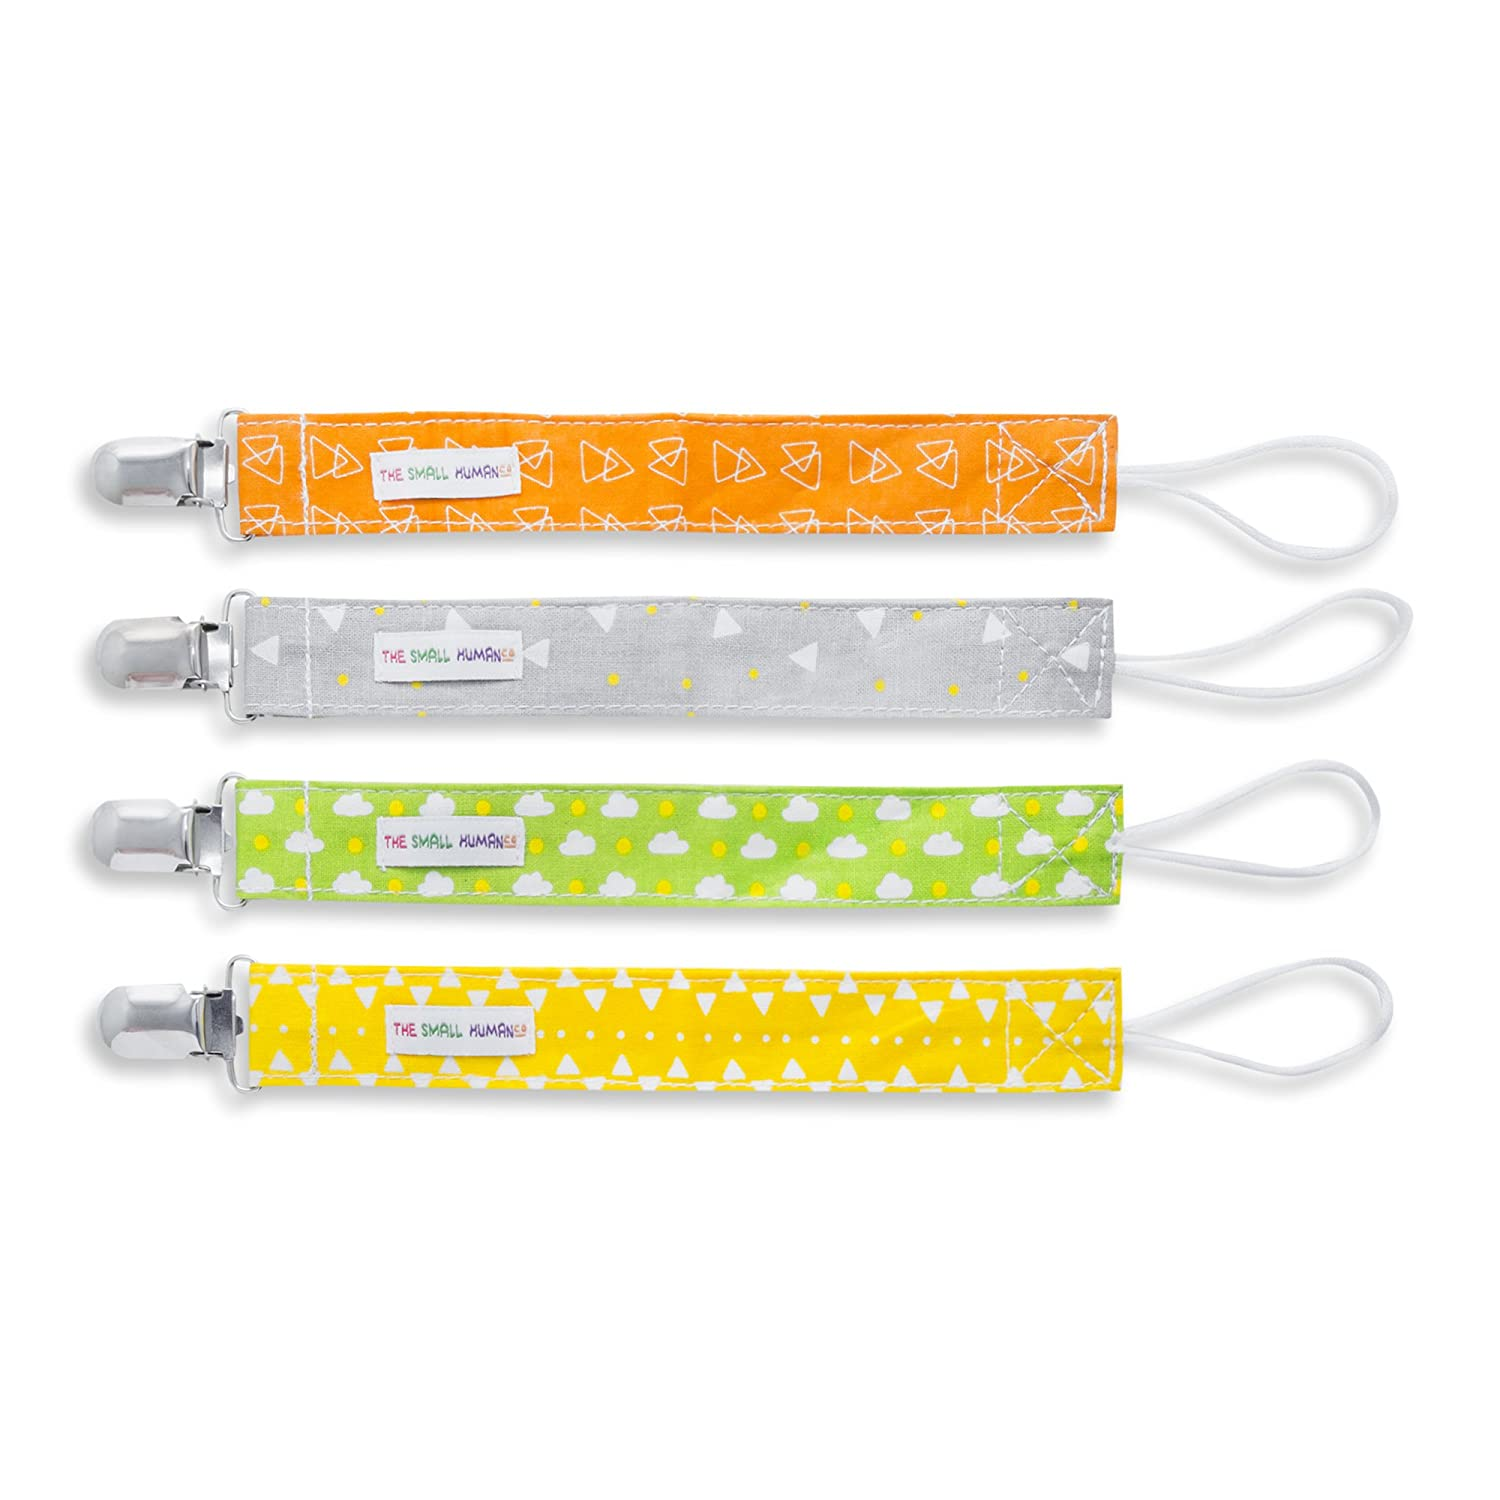 Baby Dummy Clip Set - 4 x Unisex Designs for Soother/Pacifier + Boys/Girls The Small Human Company